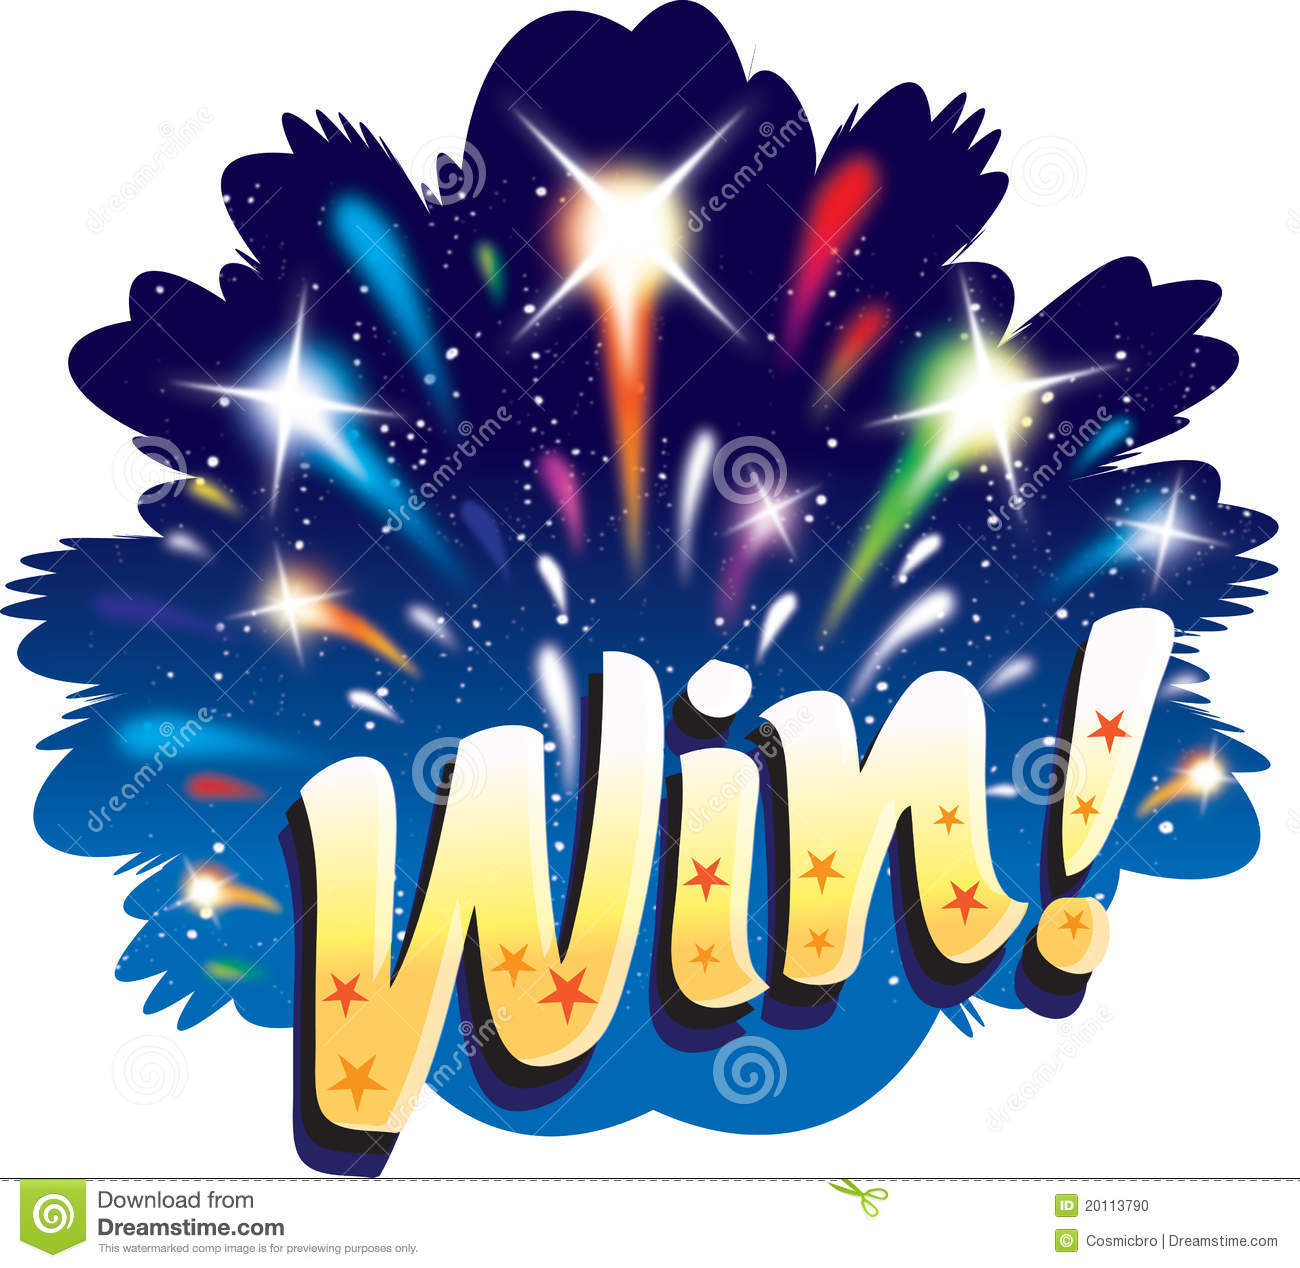 Win! Graphic fun explosion firework logo design icon competition happy ...